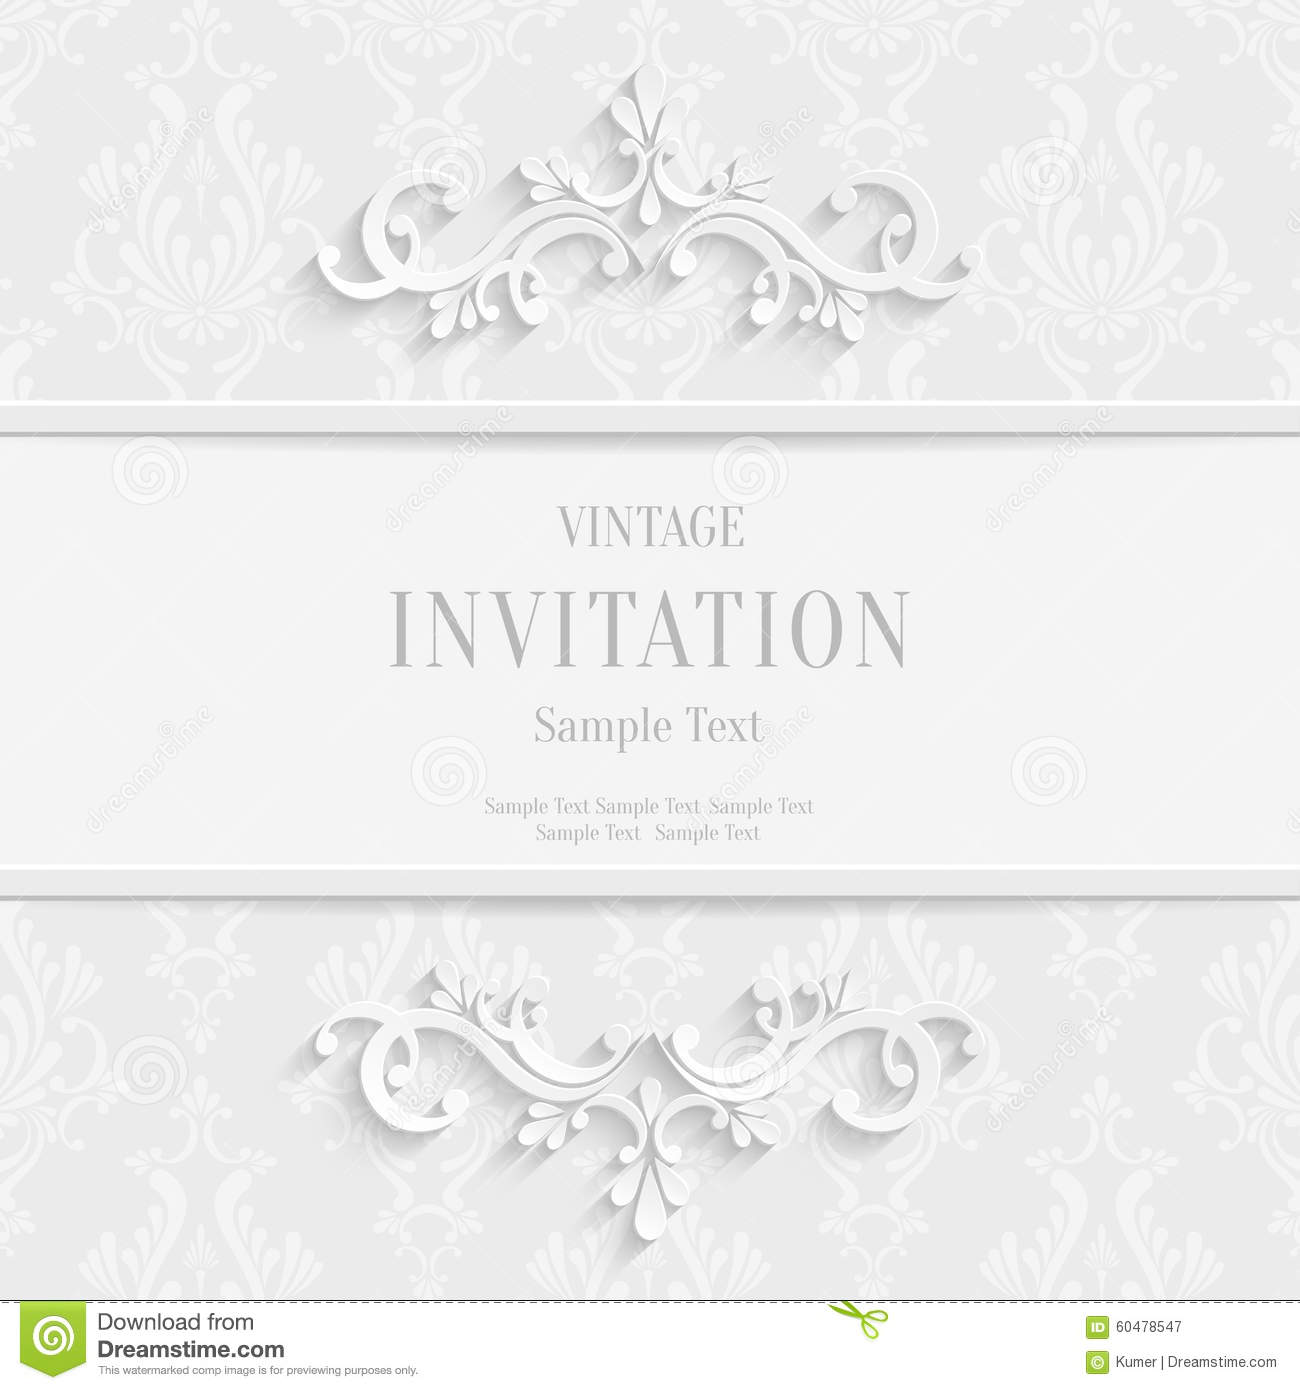 vector white floral d christmas invitation cards background stock vector white floral 3d christmas invitation cards background